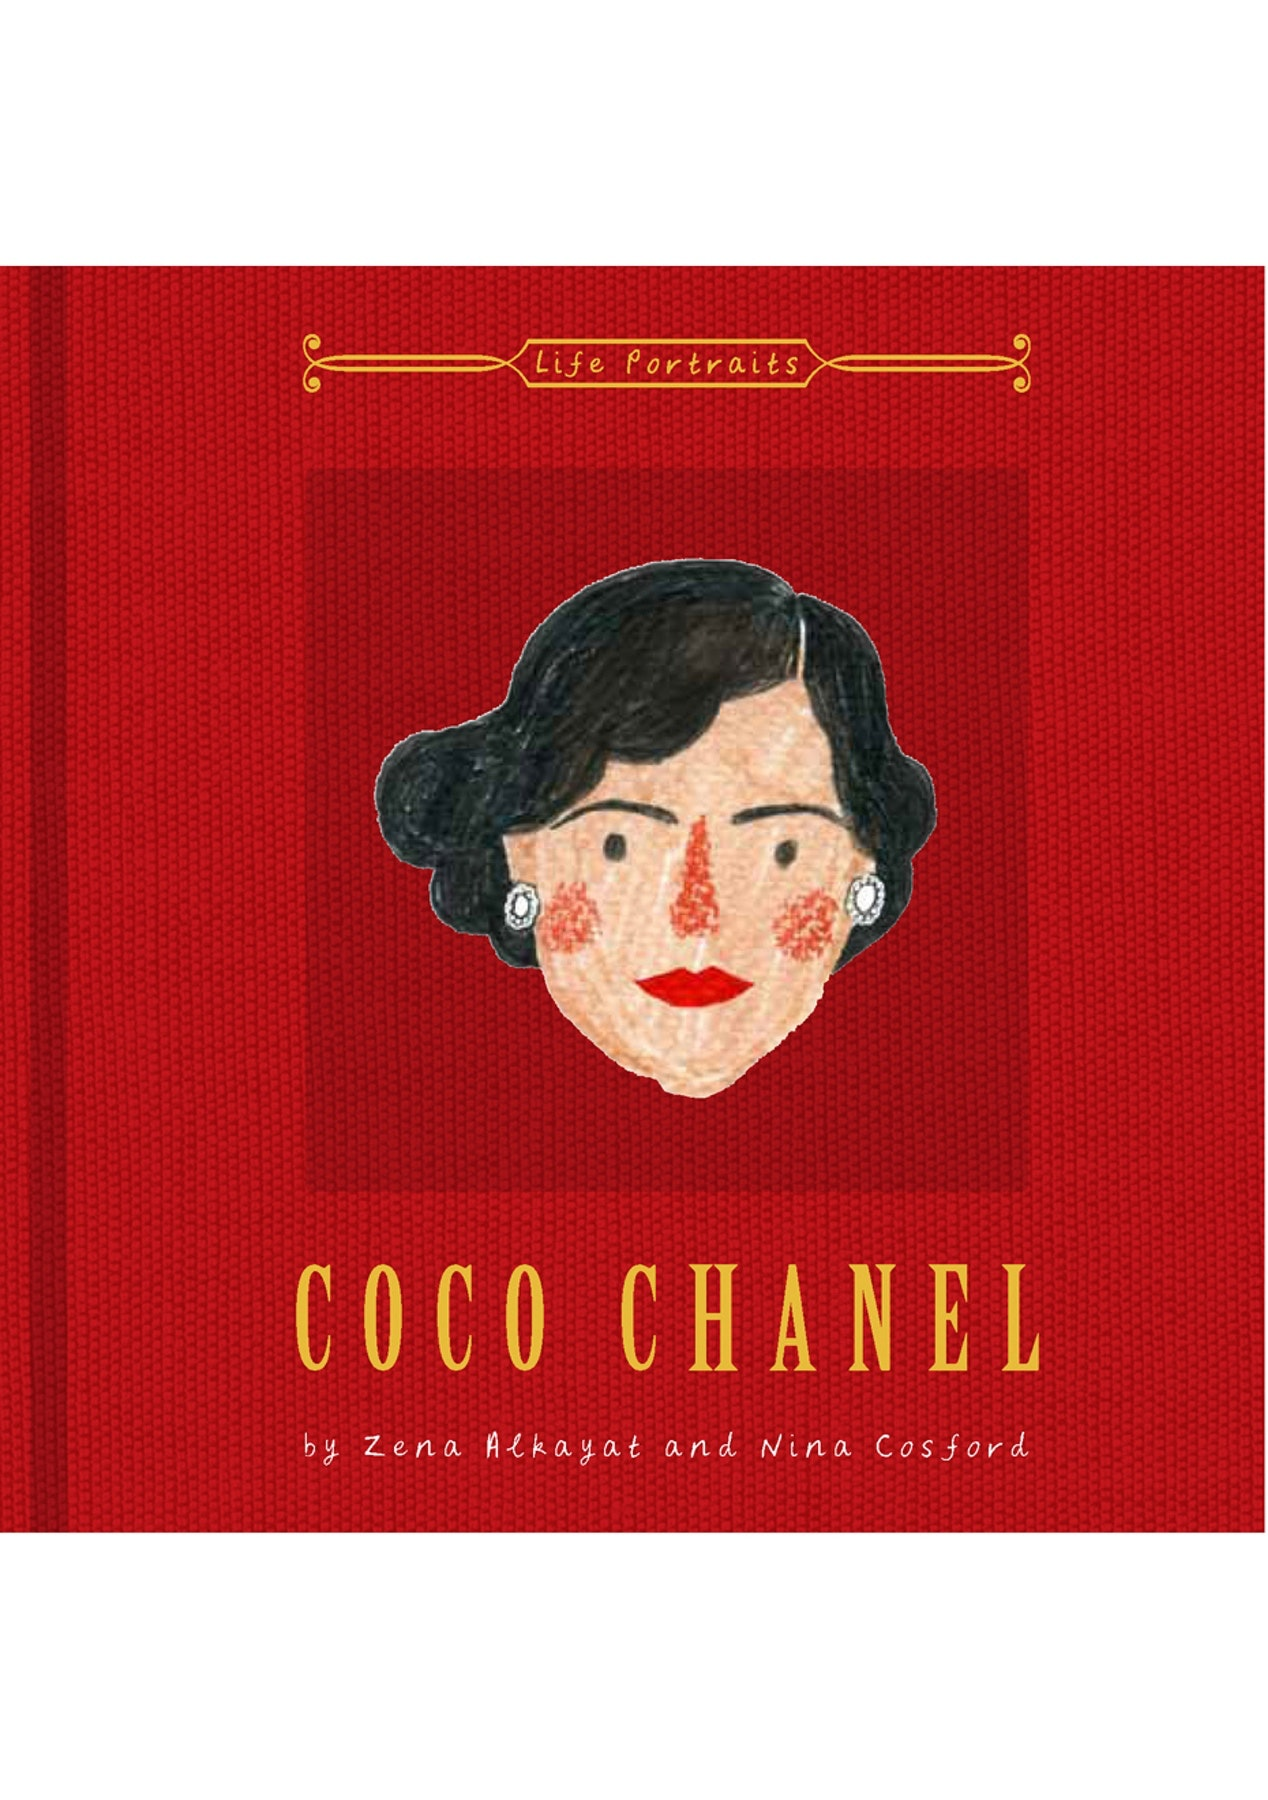 Coco Chanel, by Nina Cosford and Zena Alkayat